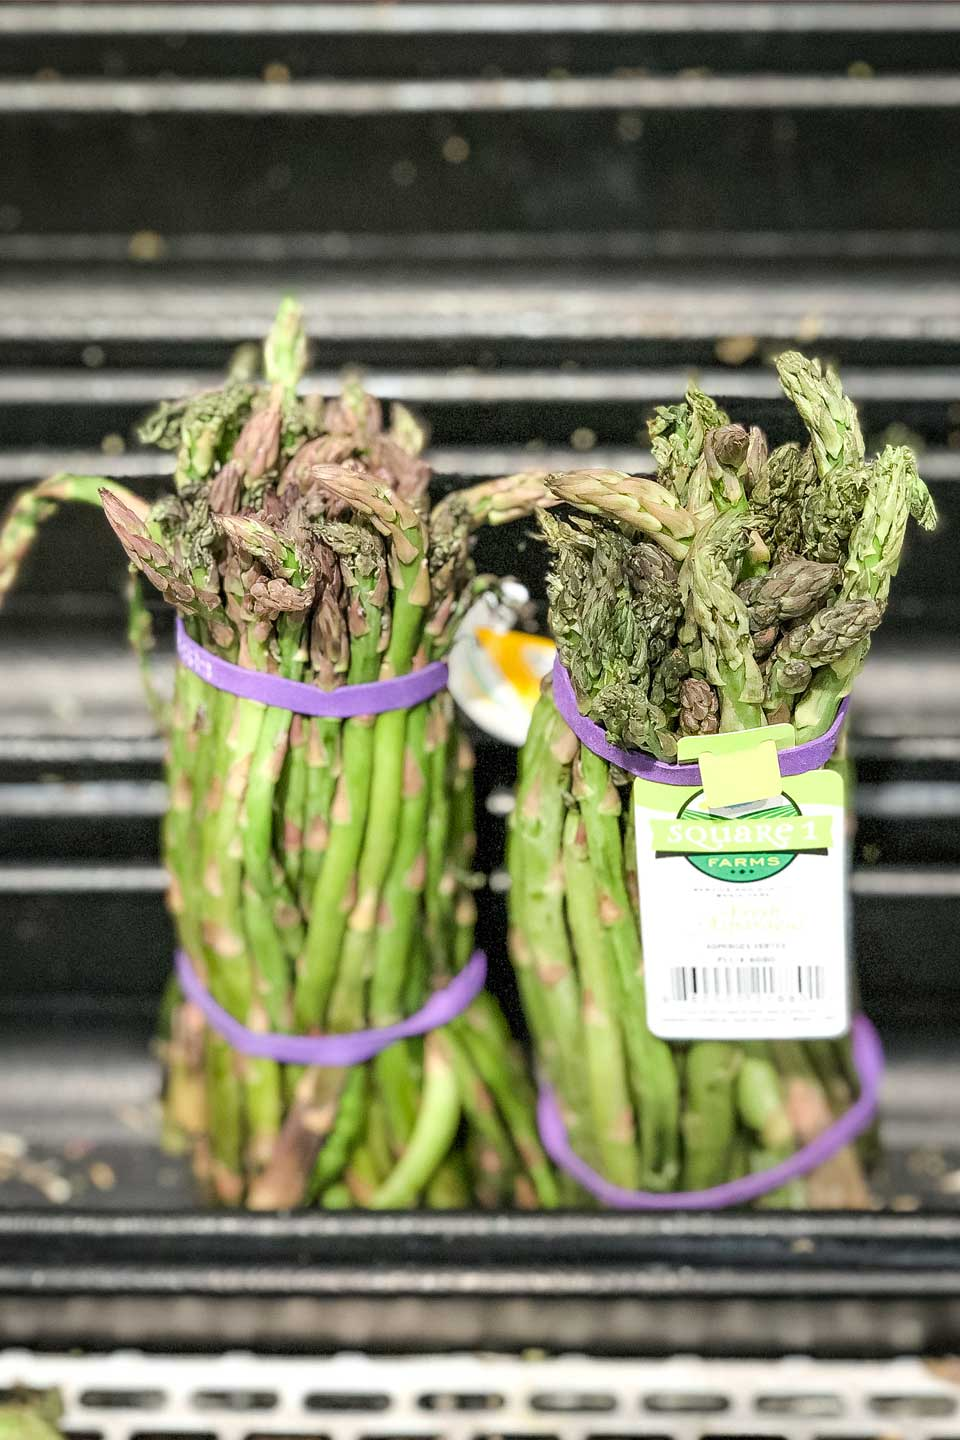 Two bunches of asparagus held together with purple rubber bands and sitting in the little water troughs in a grocery store display.